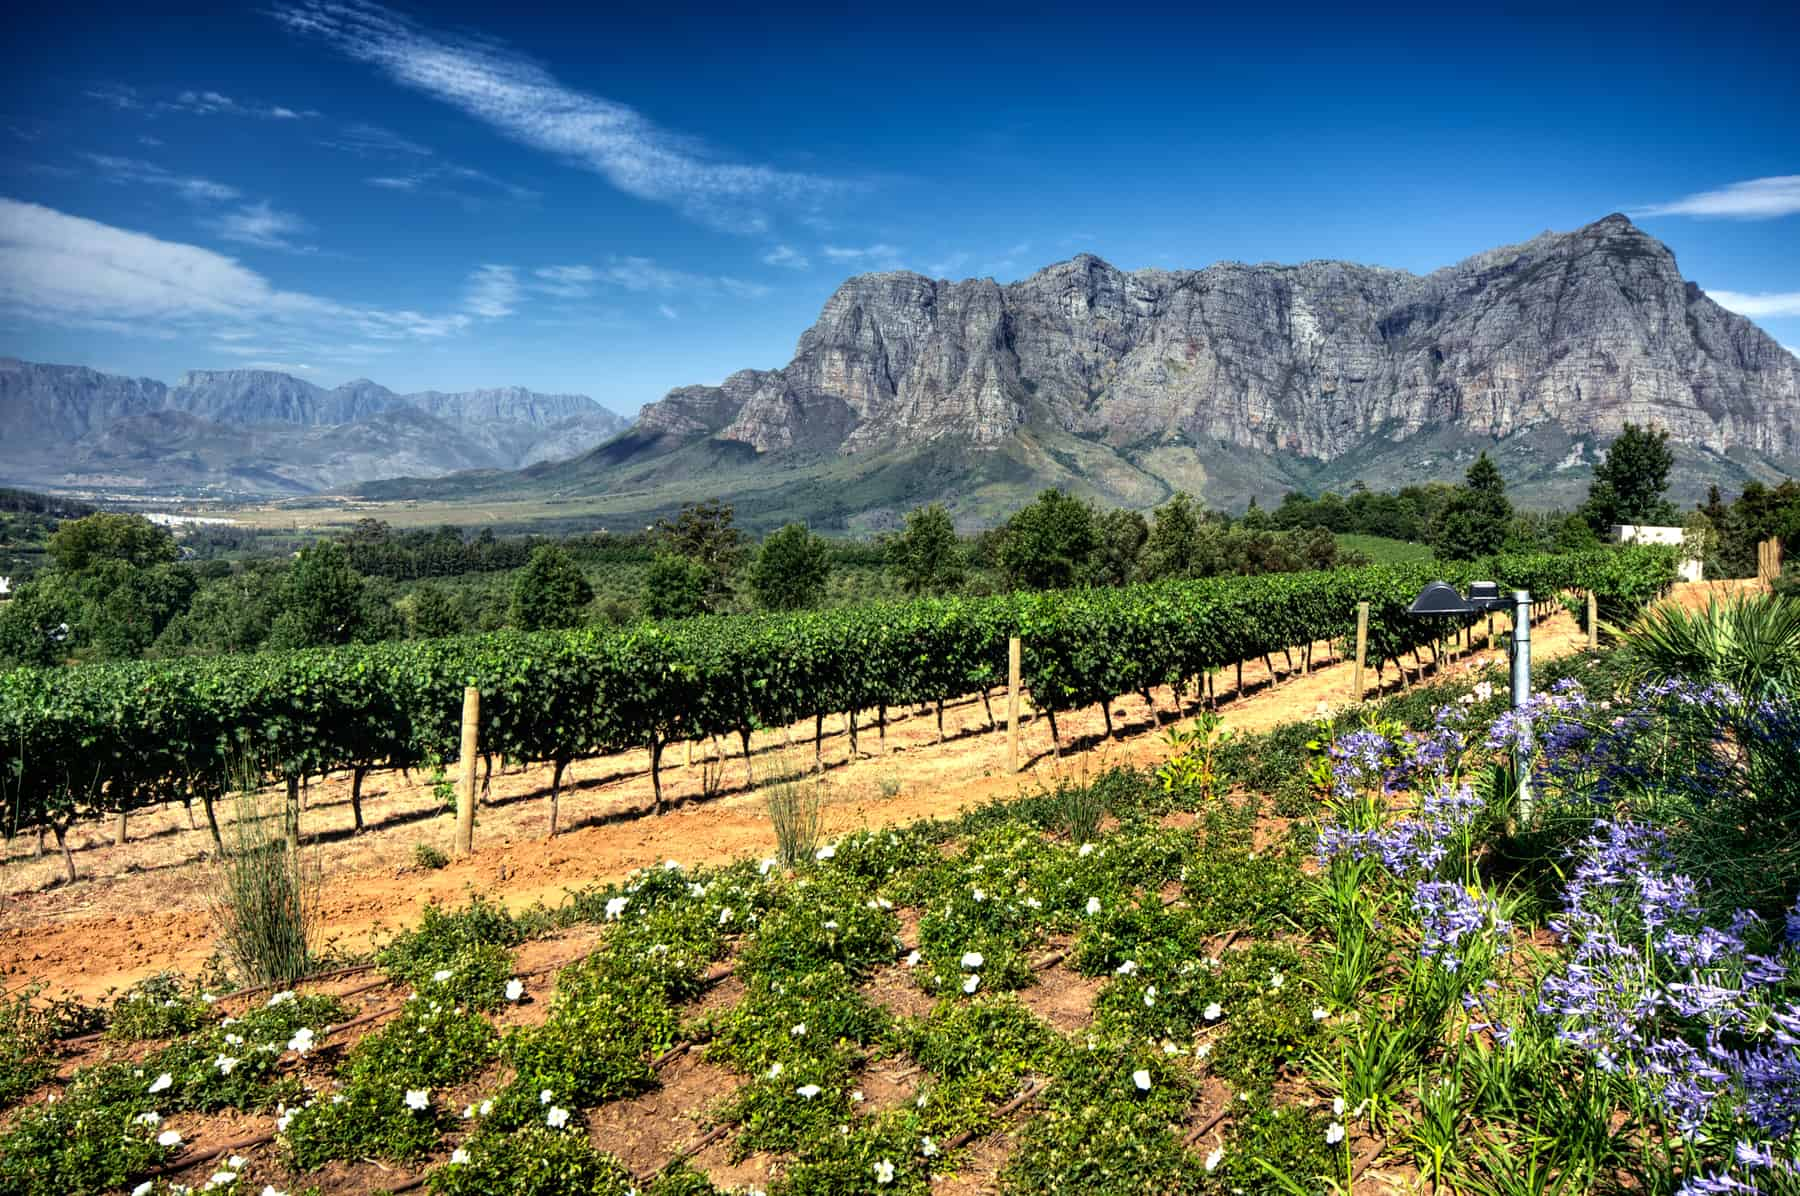 This sign marks the beginning of the new Stellenbosch American Express Wine Routes that represent more than 200 wine and grape producers within the boundaries of the Stellenbosch Wine of Origin classification. The Wine Route is divided into five sub-routes, Stellenbosch, South Africa